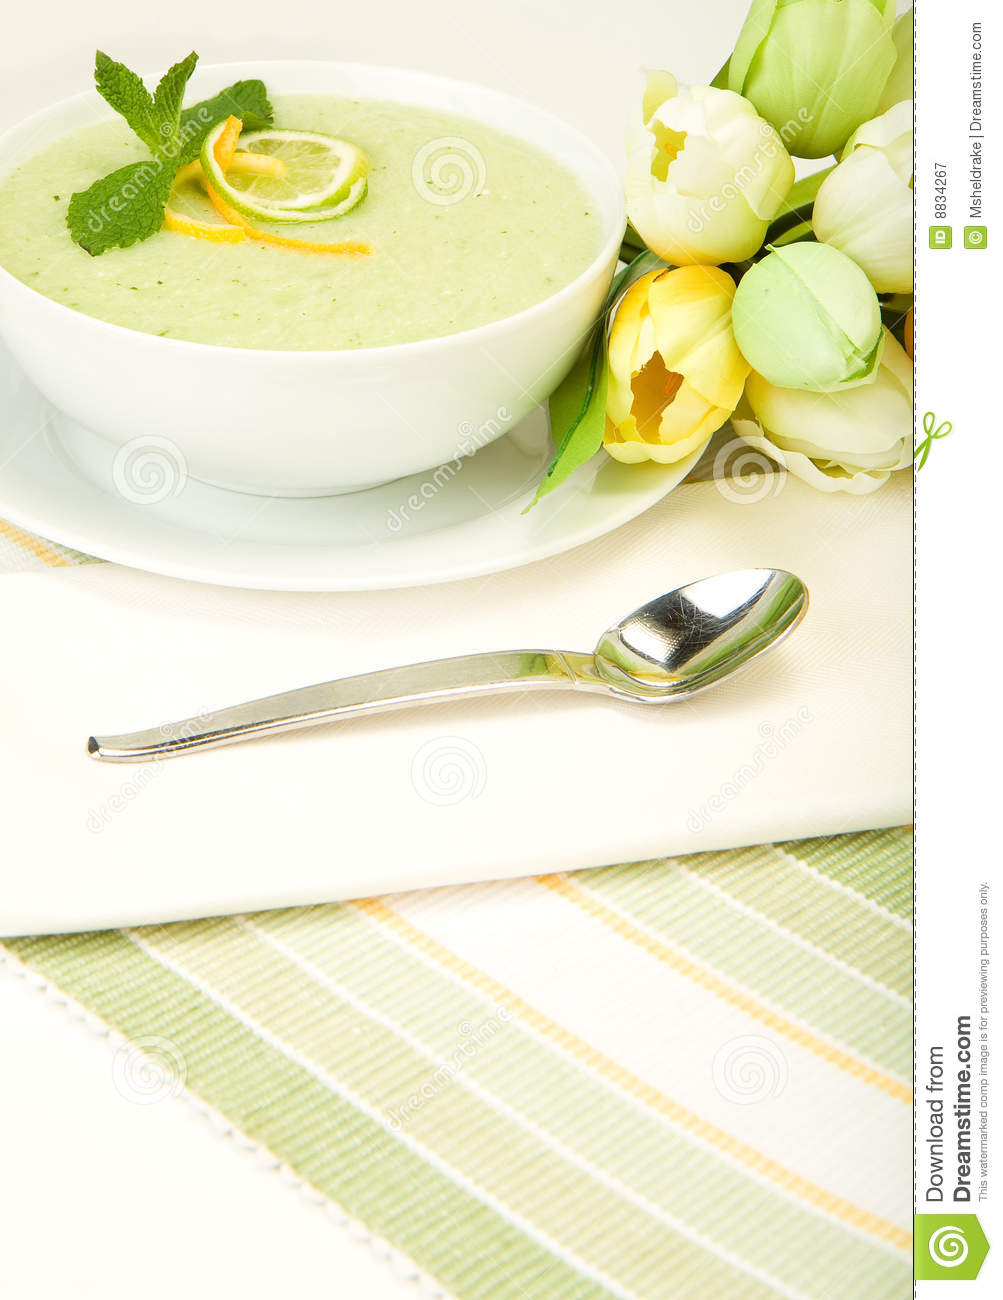 Cool Melon Soup Royalty Free Stock Photography - Image: 8834267